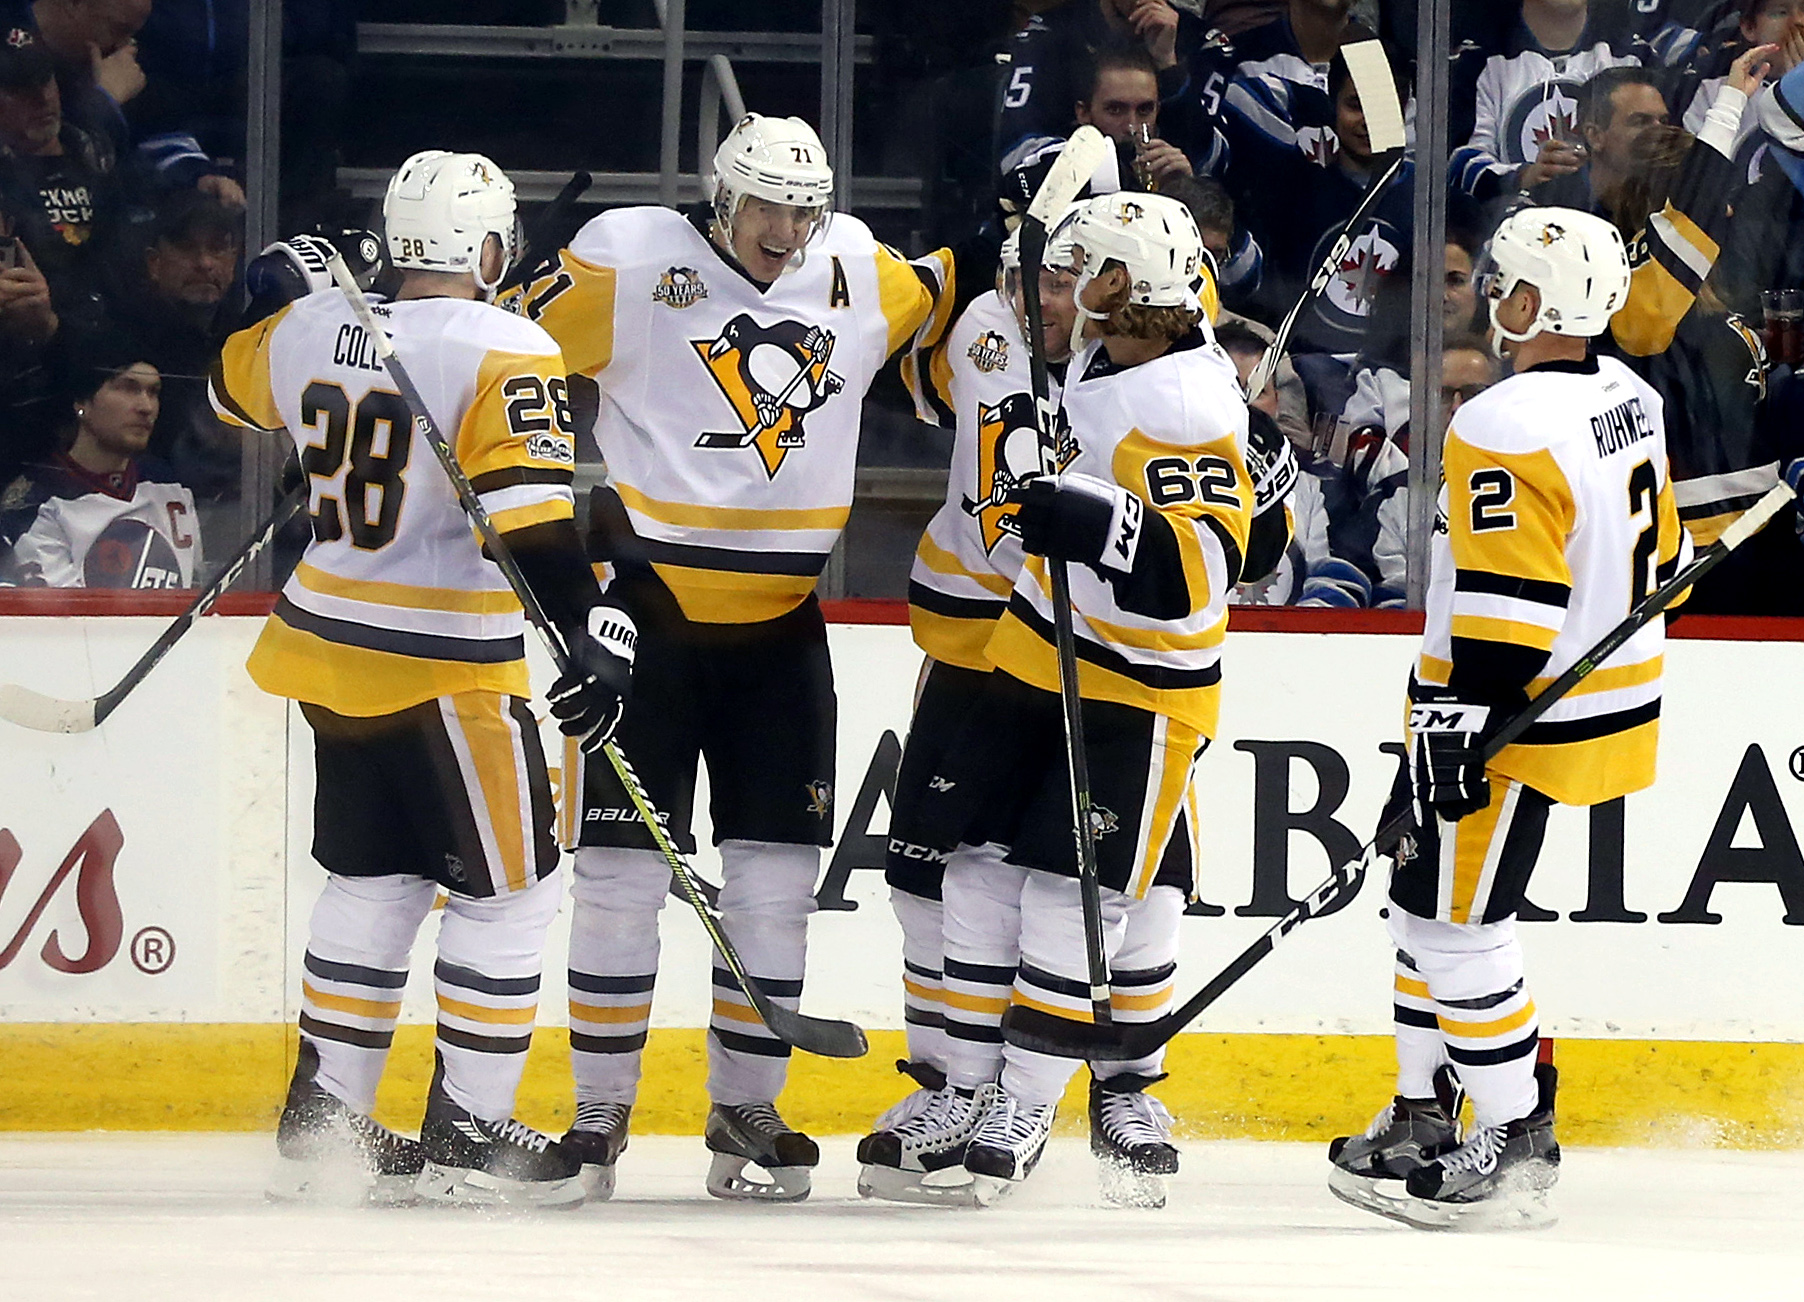 Pittsburgh Penguins March Penguins